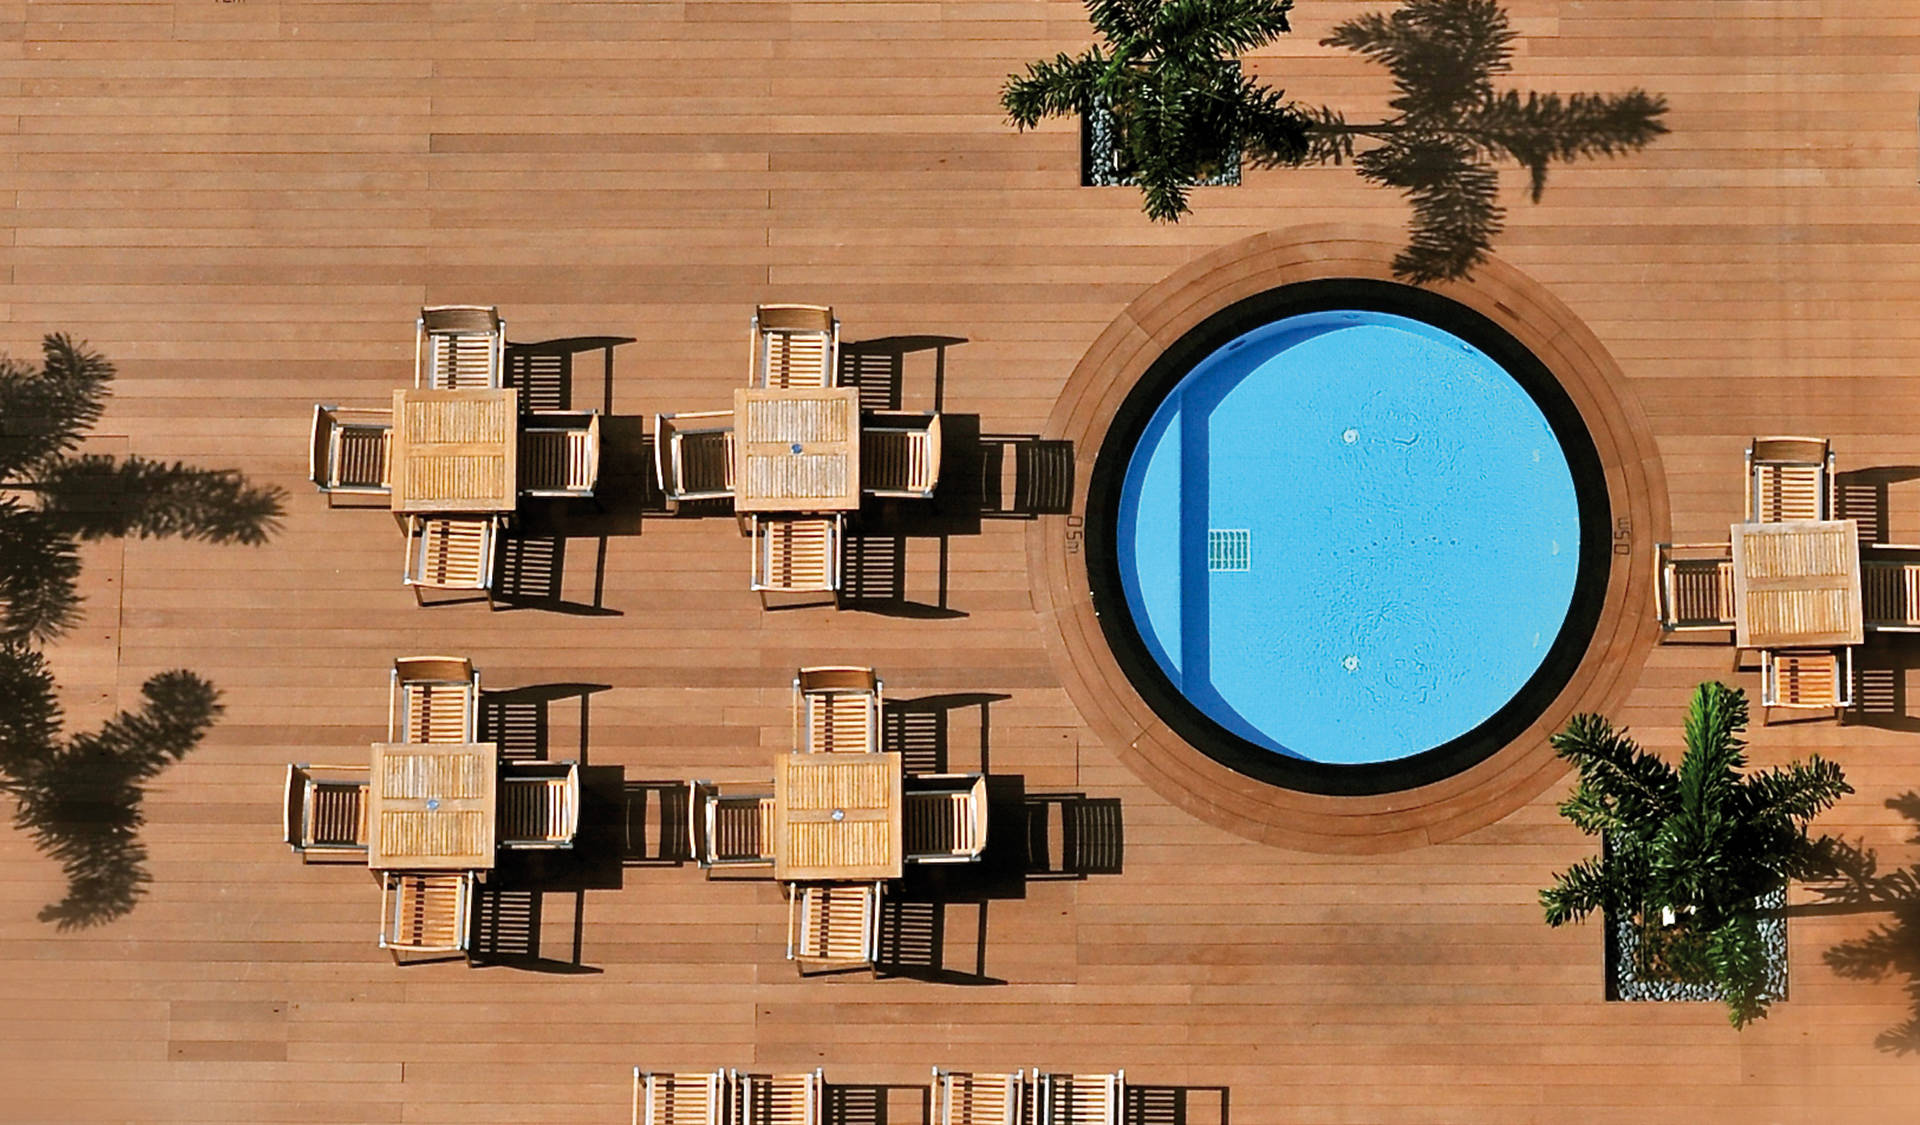 Slip-resistant terraces from verando from resysta at an outdoor pool.